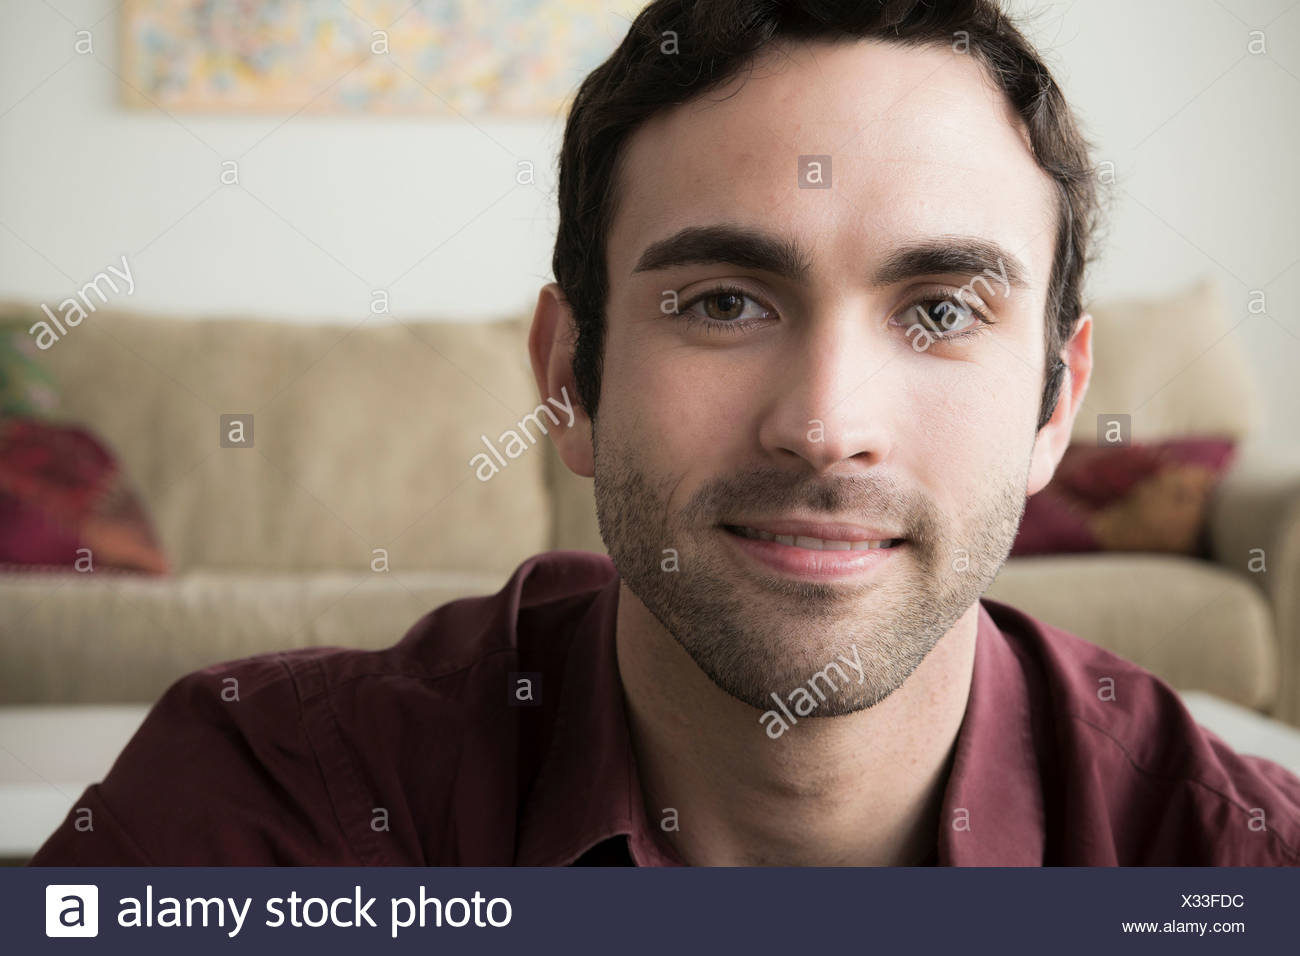 Portrait of young man with black hair - Stock Image